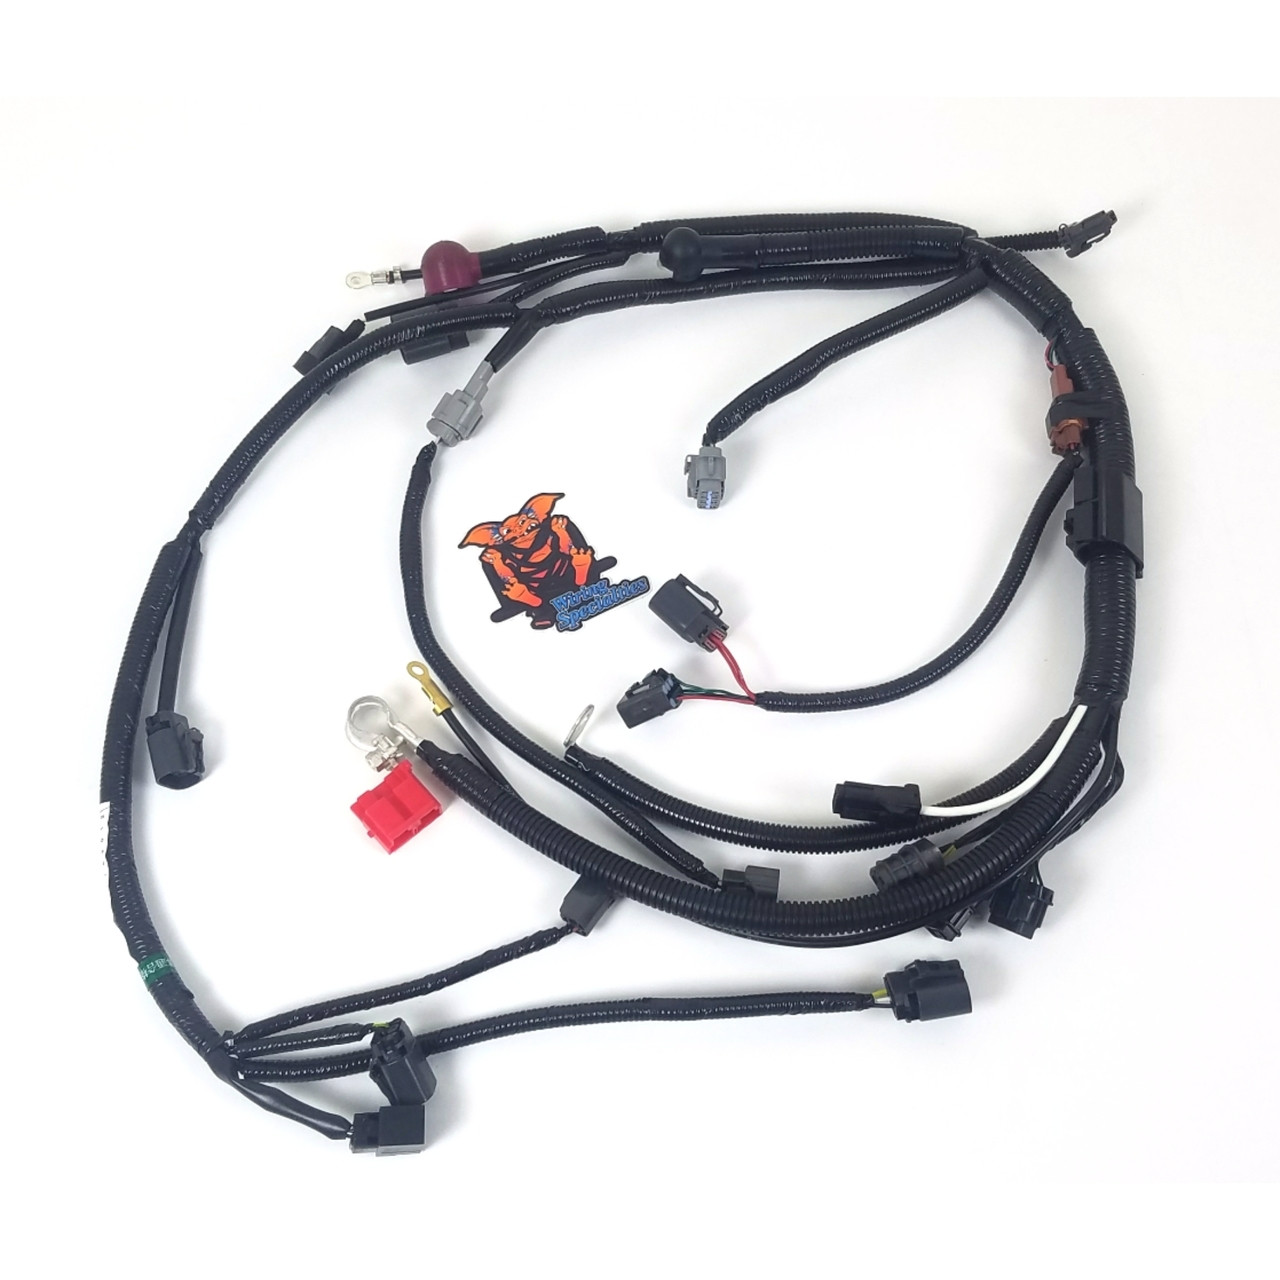 small resolution of wiring specialties s14 ka24de lower harness for 240sx s14 enjuku racing parts llc